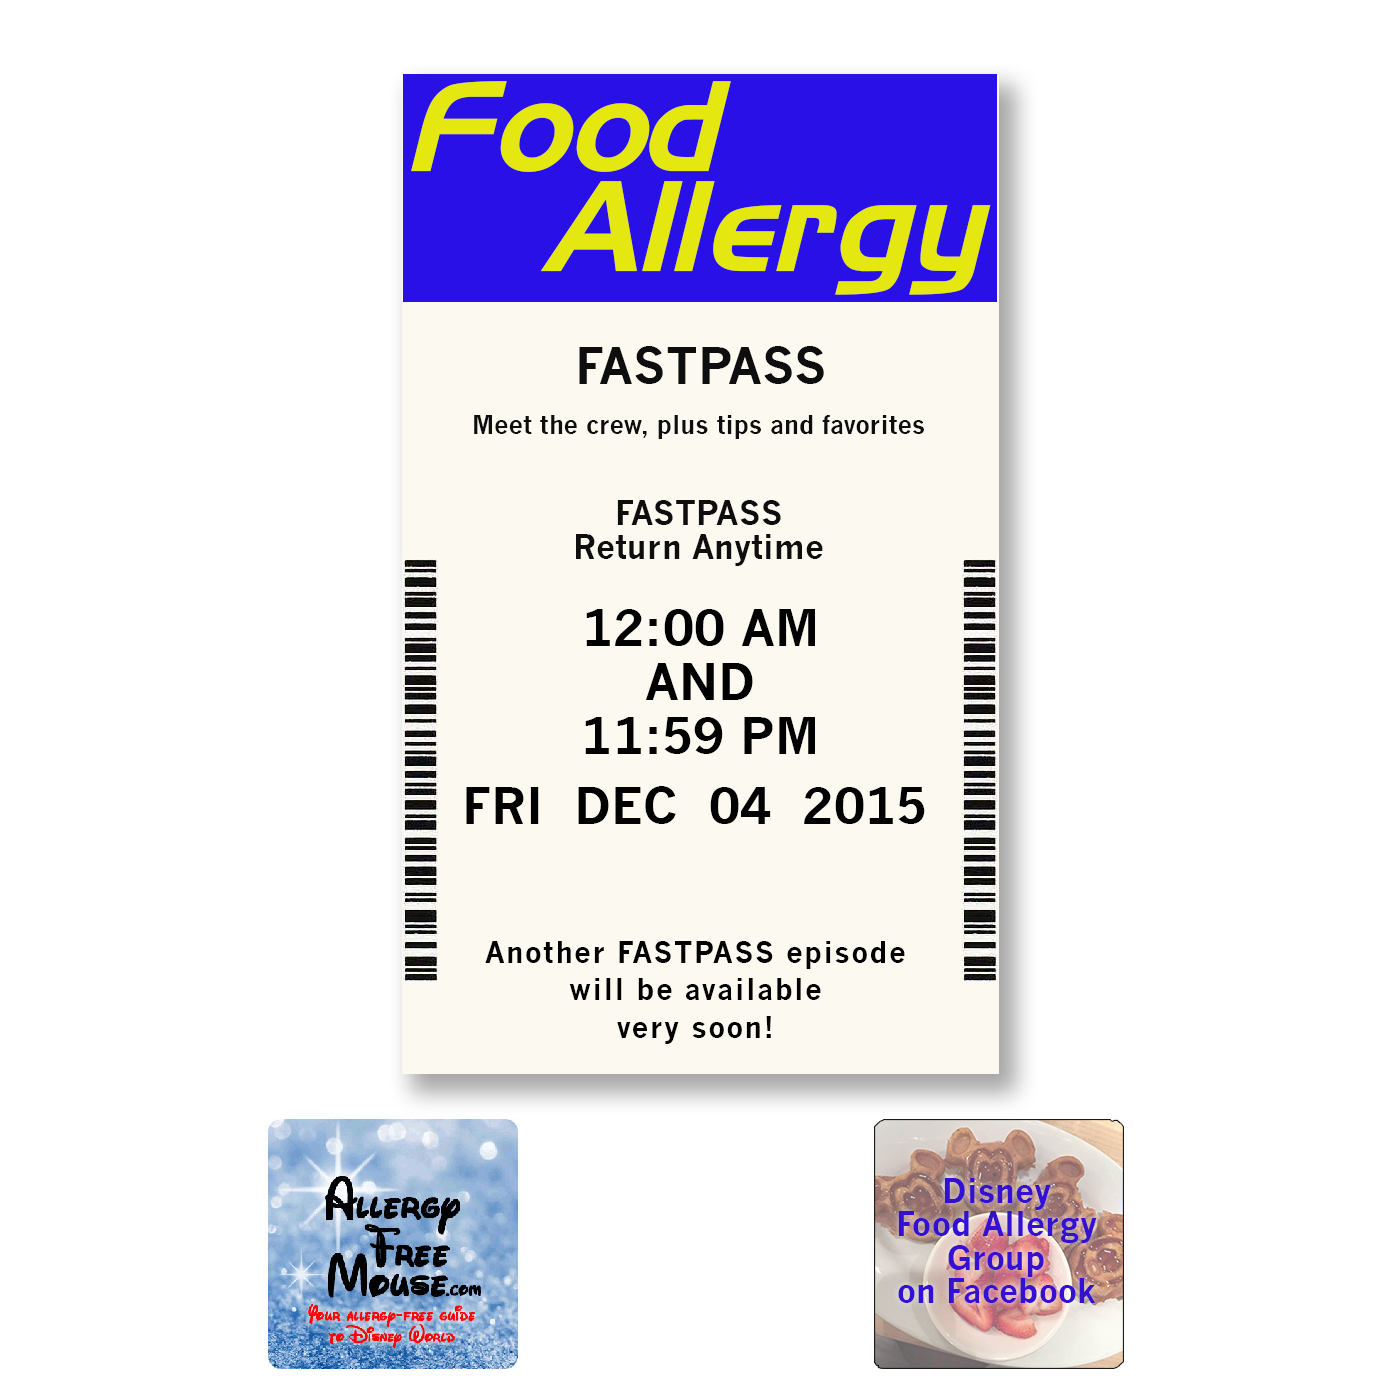 Food Allergy FastPass for Disney fans